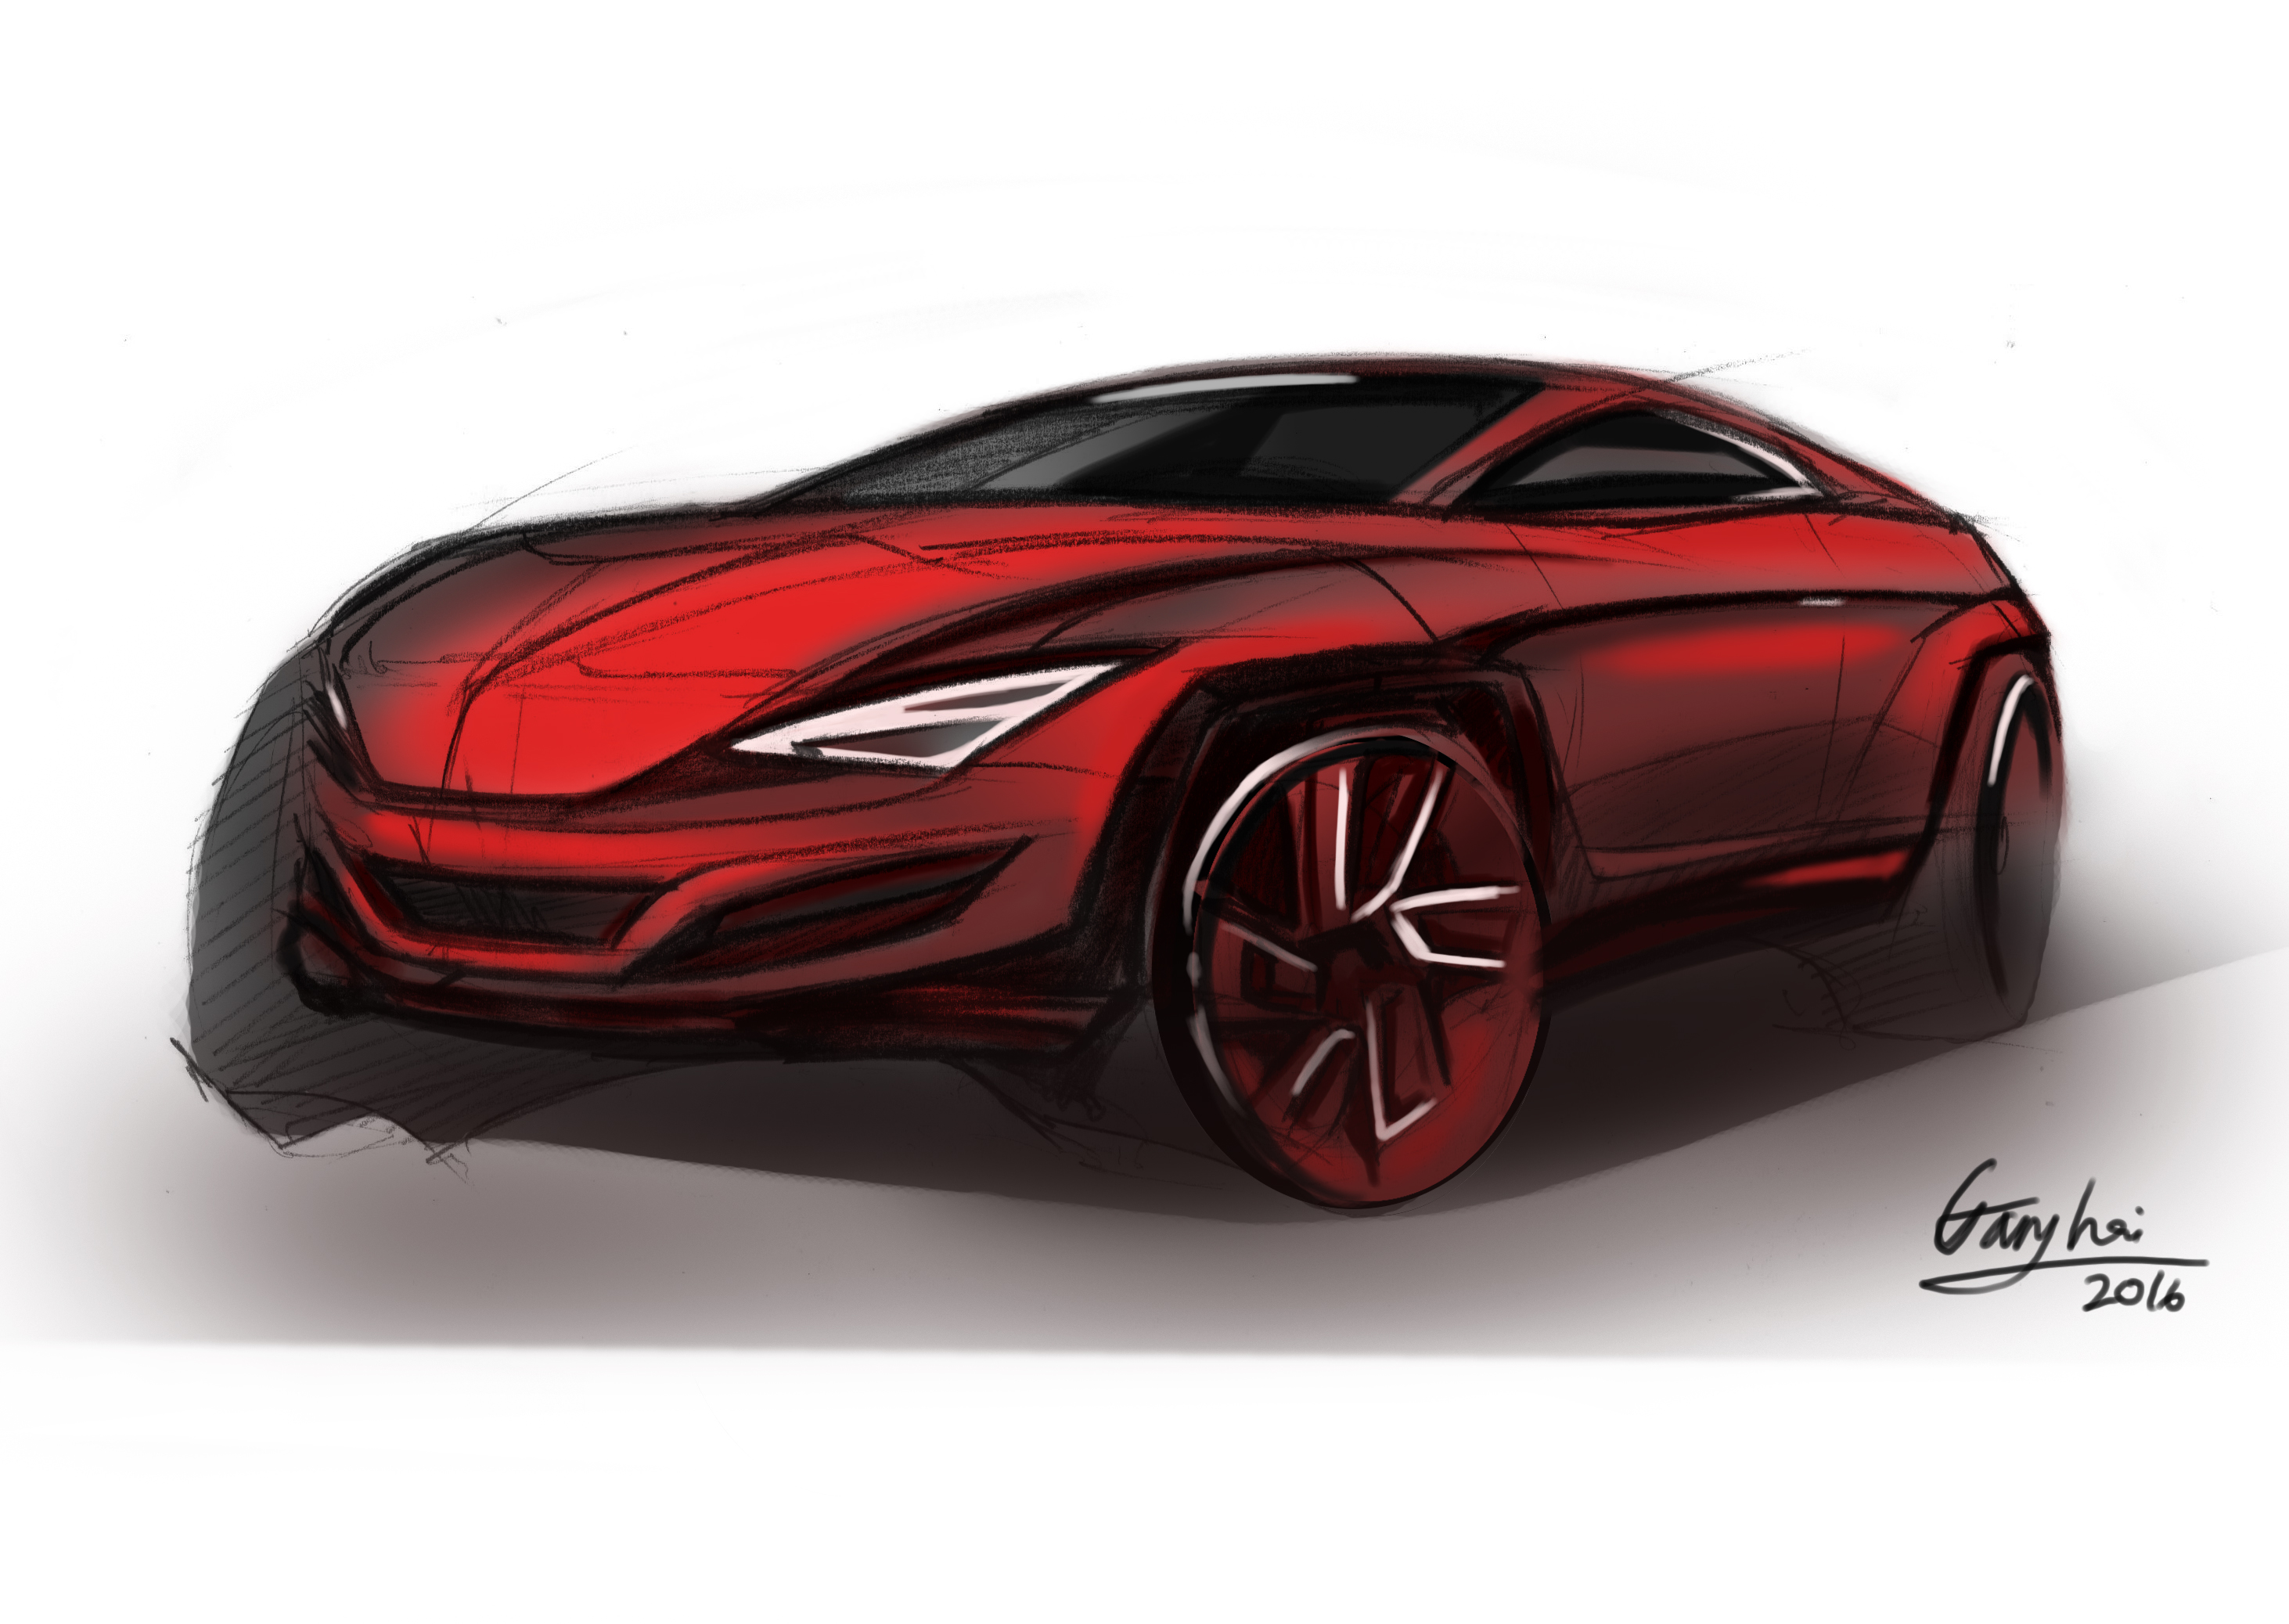 Suv Compact Crossover Sketch Davidson Automotive